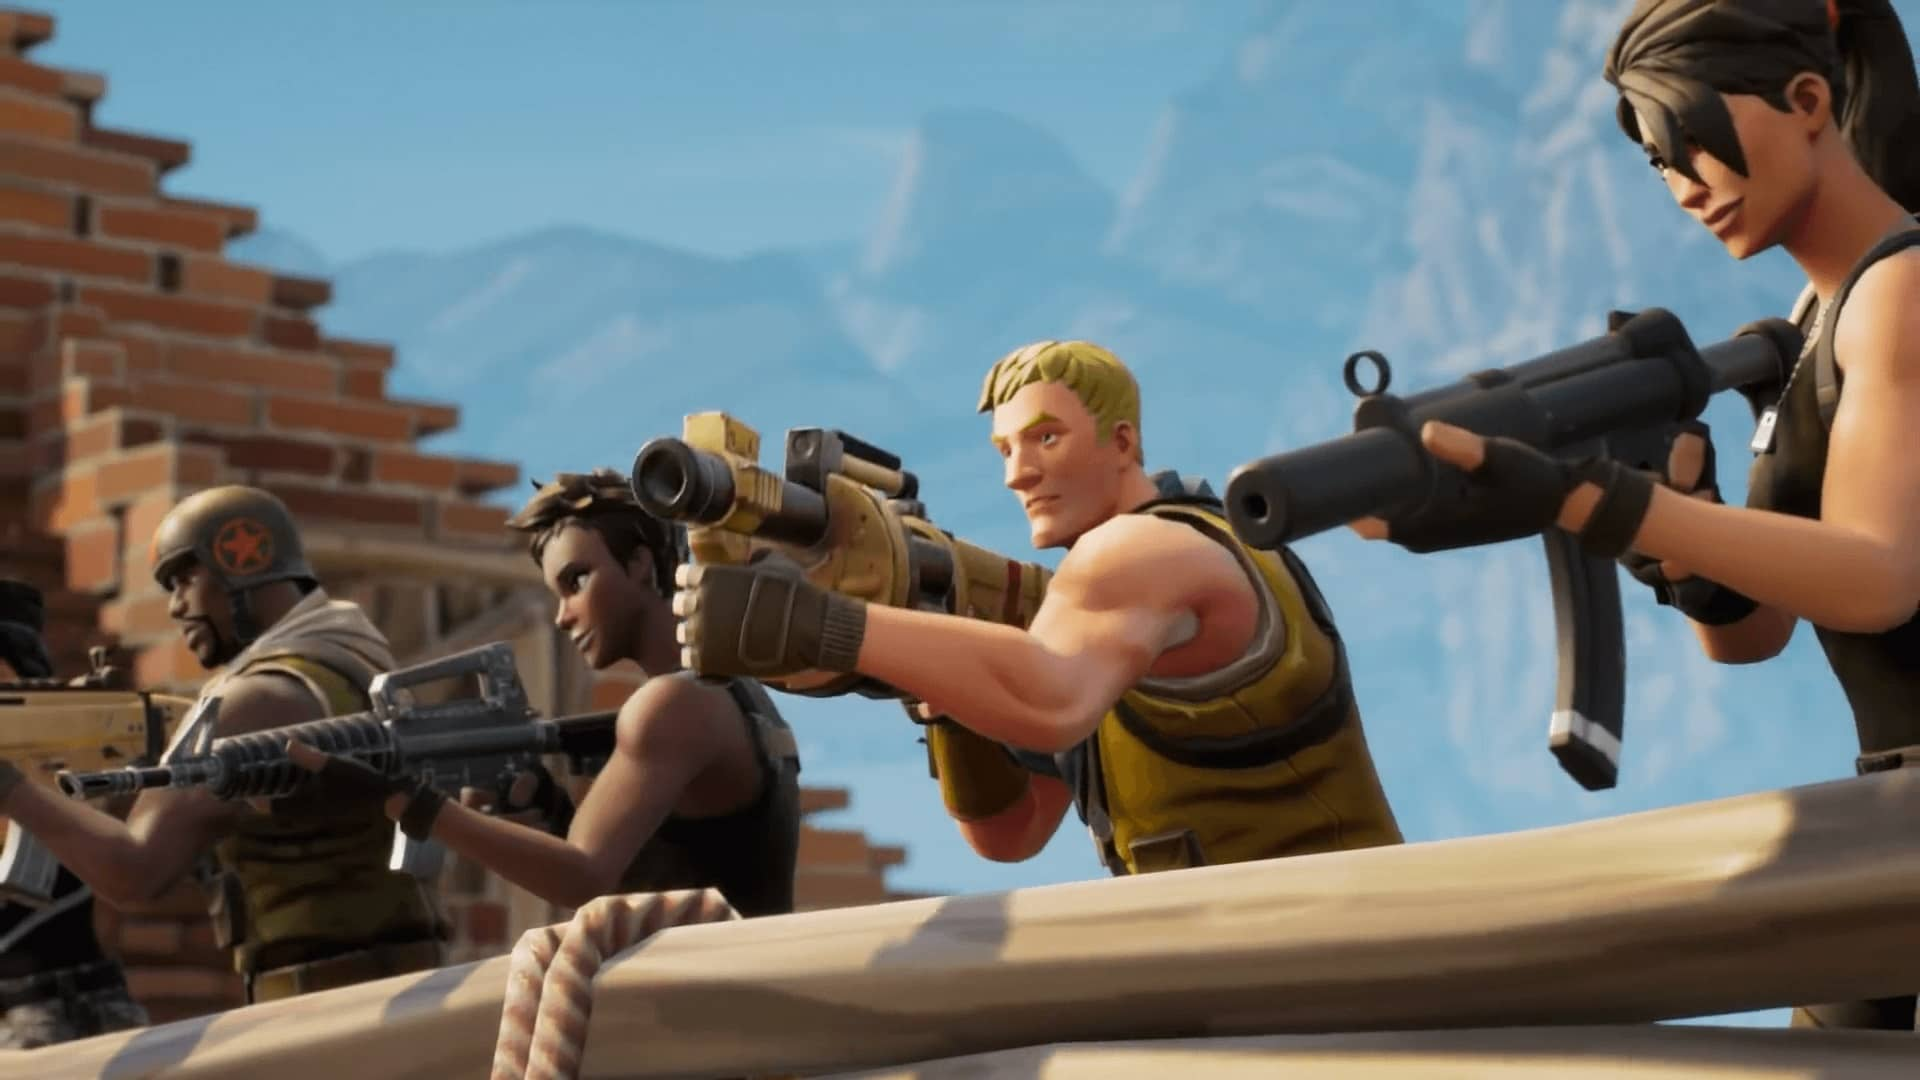 Fortnite Matchmaking Disabled: Why Matchmaking Has Been Temporarily Disabled Fortnite